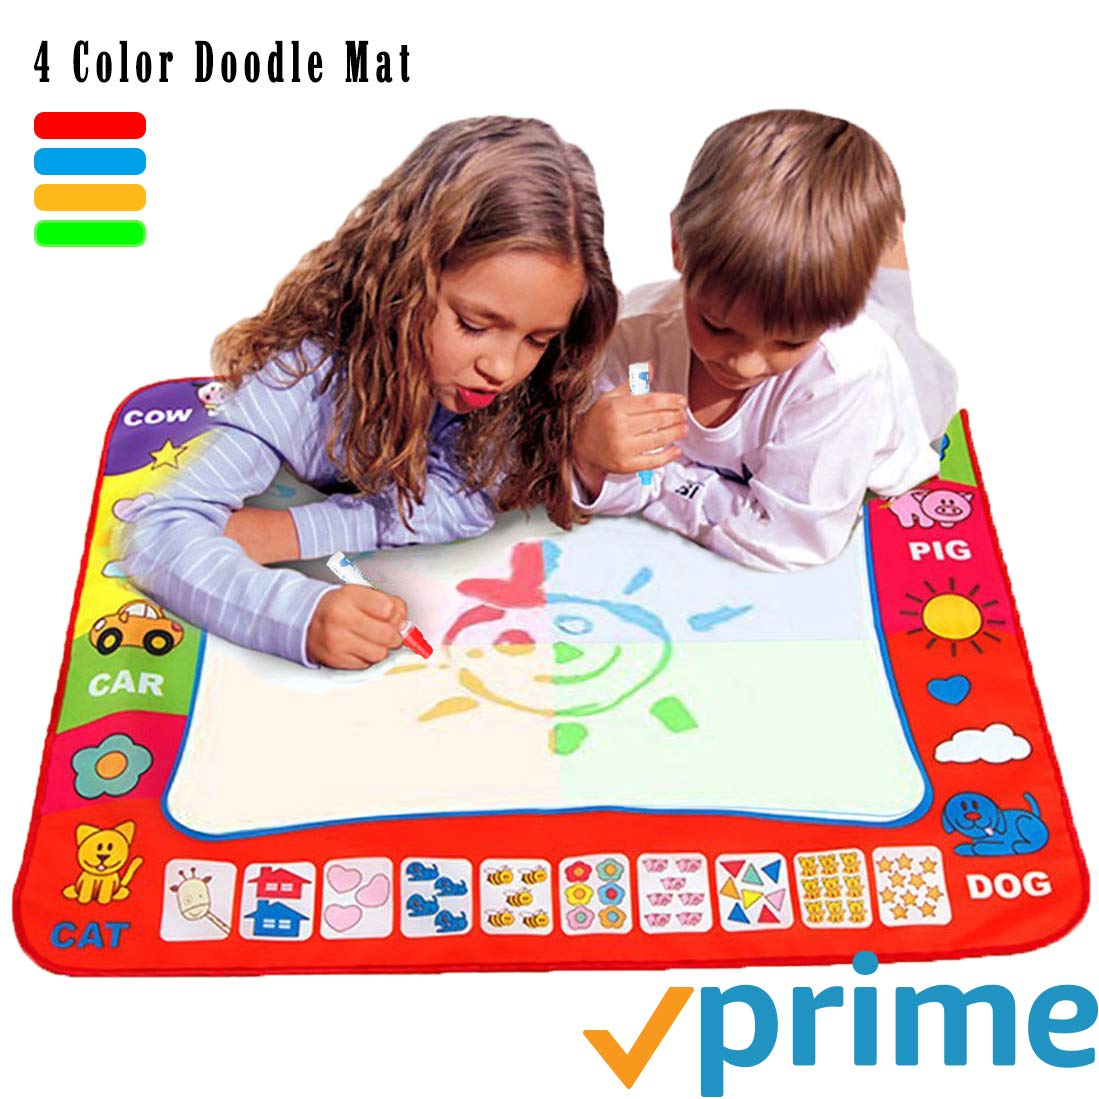 Original Pacakge Ehdching Aqua Magic Water Doodle Mat 4 Color Boys Water Magic Drawing Board Kids Educational Toy with 2 Magic Drawing Pens for Girls Toddlers Kids Children 31.5 x 23.6